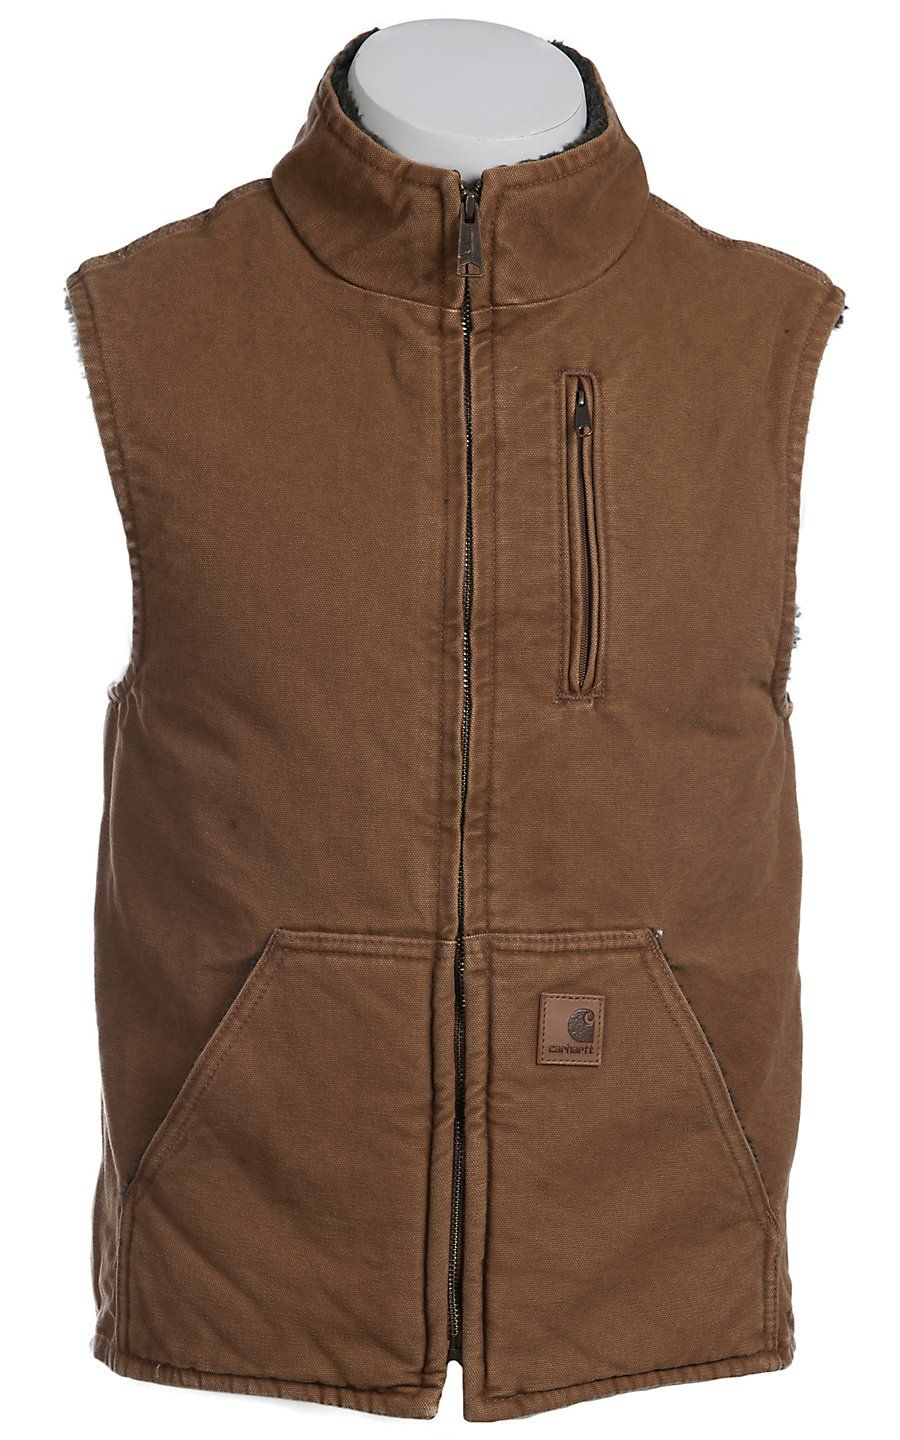 Carhartt Brown Sandstone Lined Mock Neck Vest Mens Attire Leather Waistcoat Outdoor Outfit [ 1440 x 900 Pixel ]